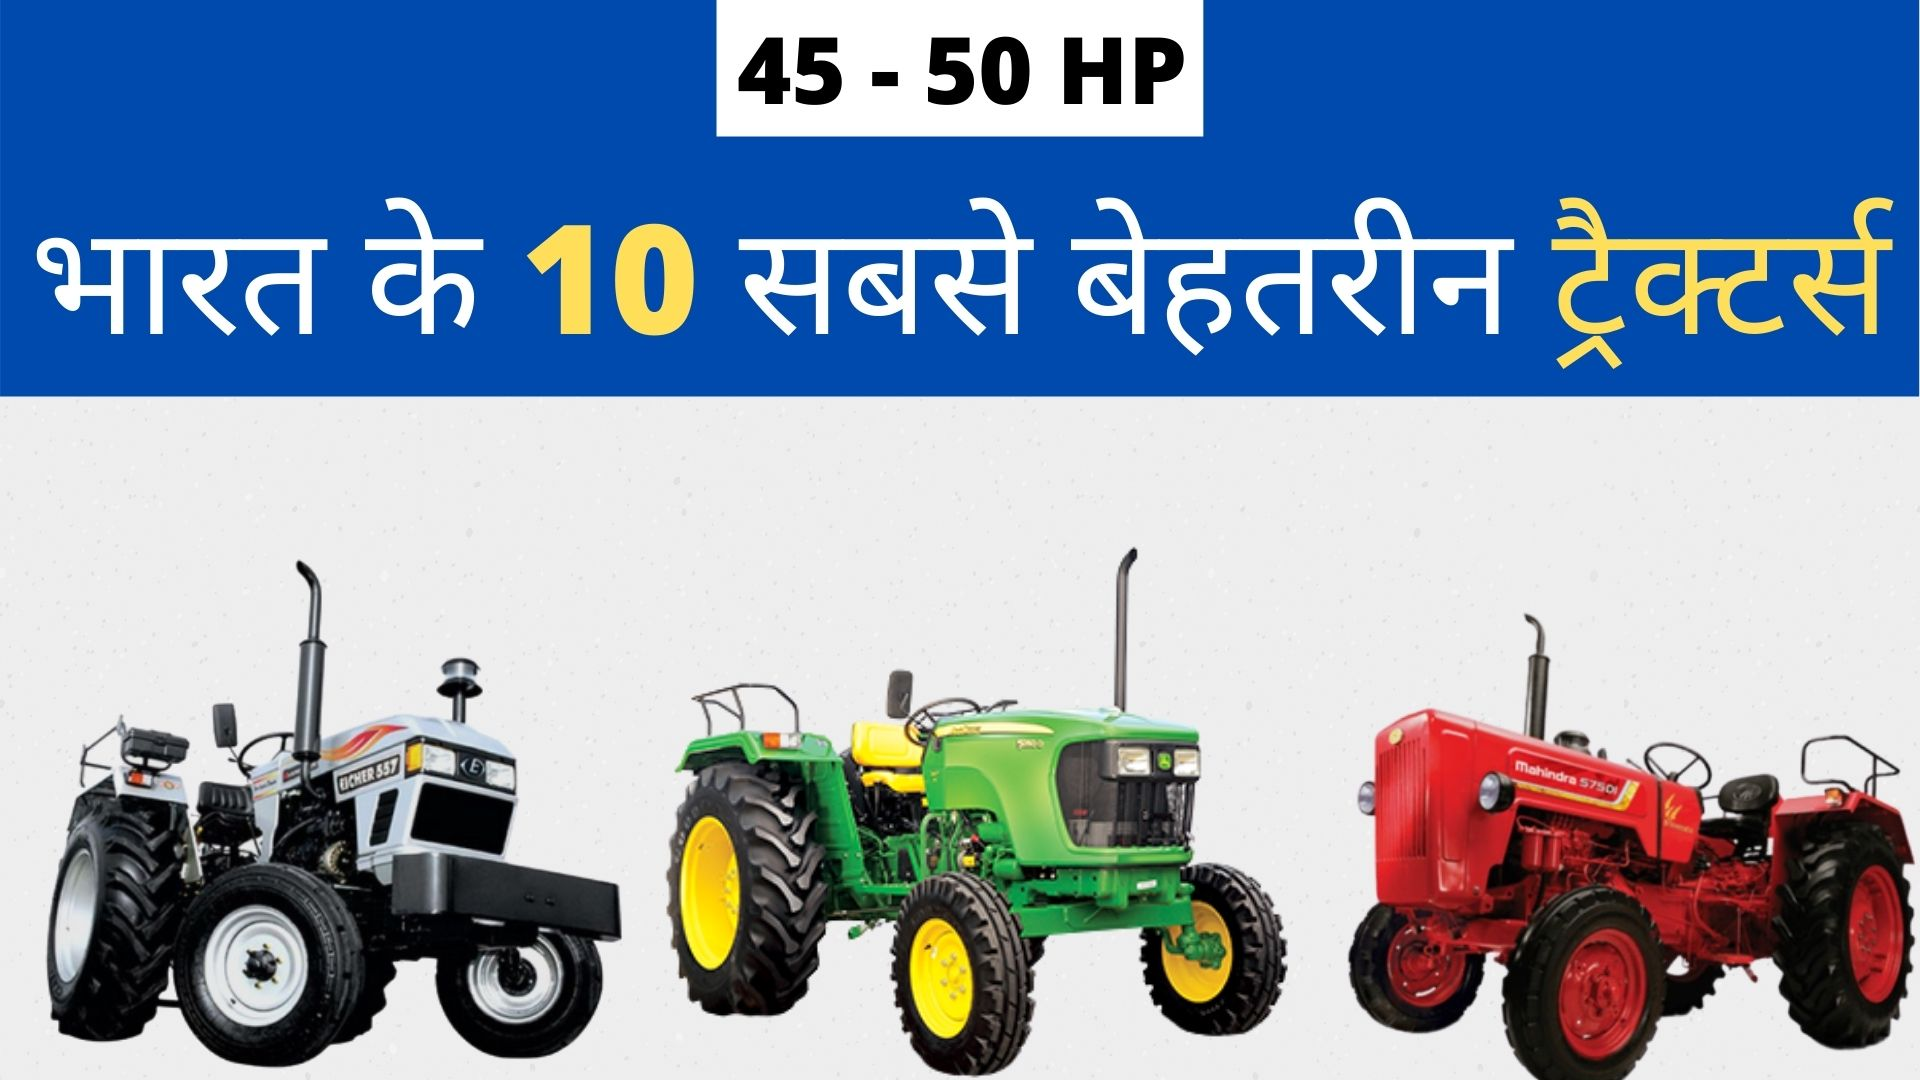 Latest Top 10 Tractors in India